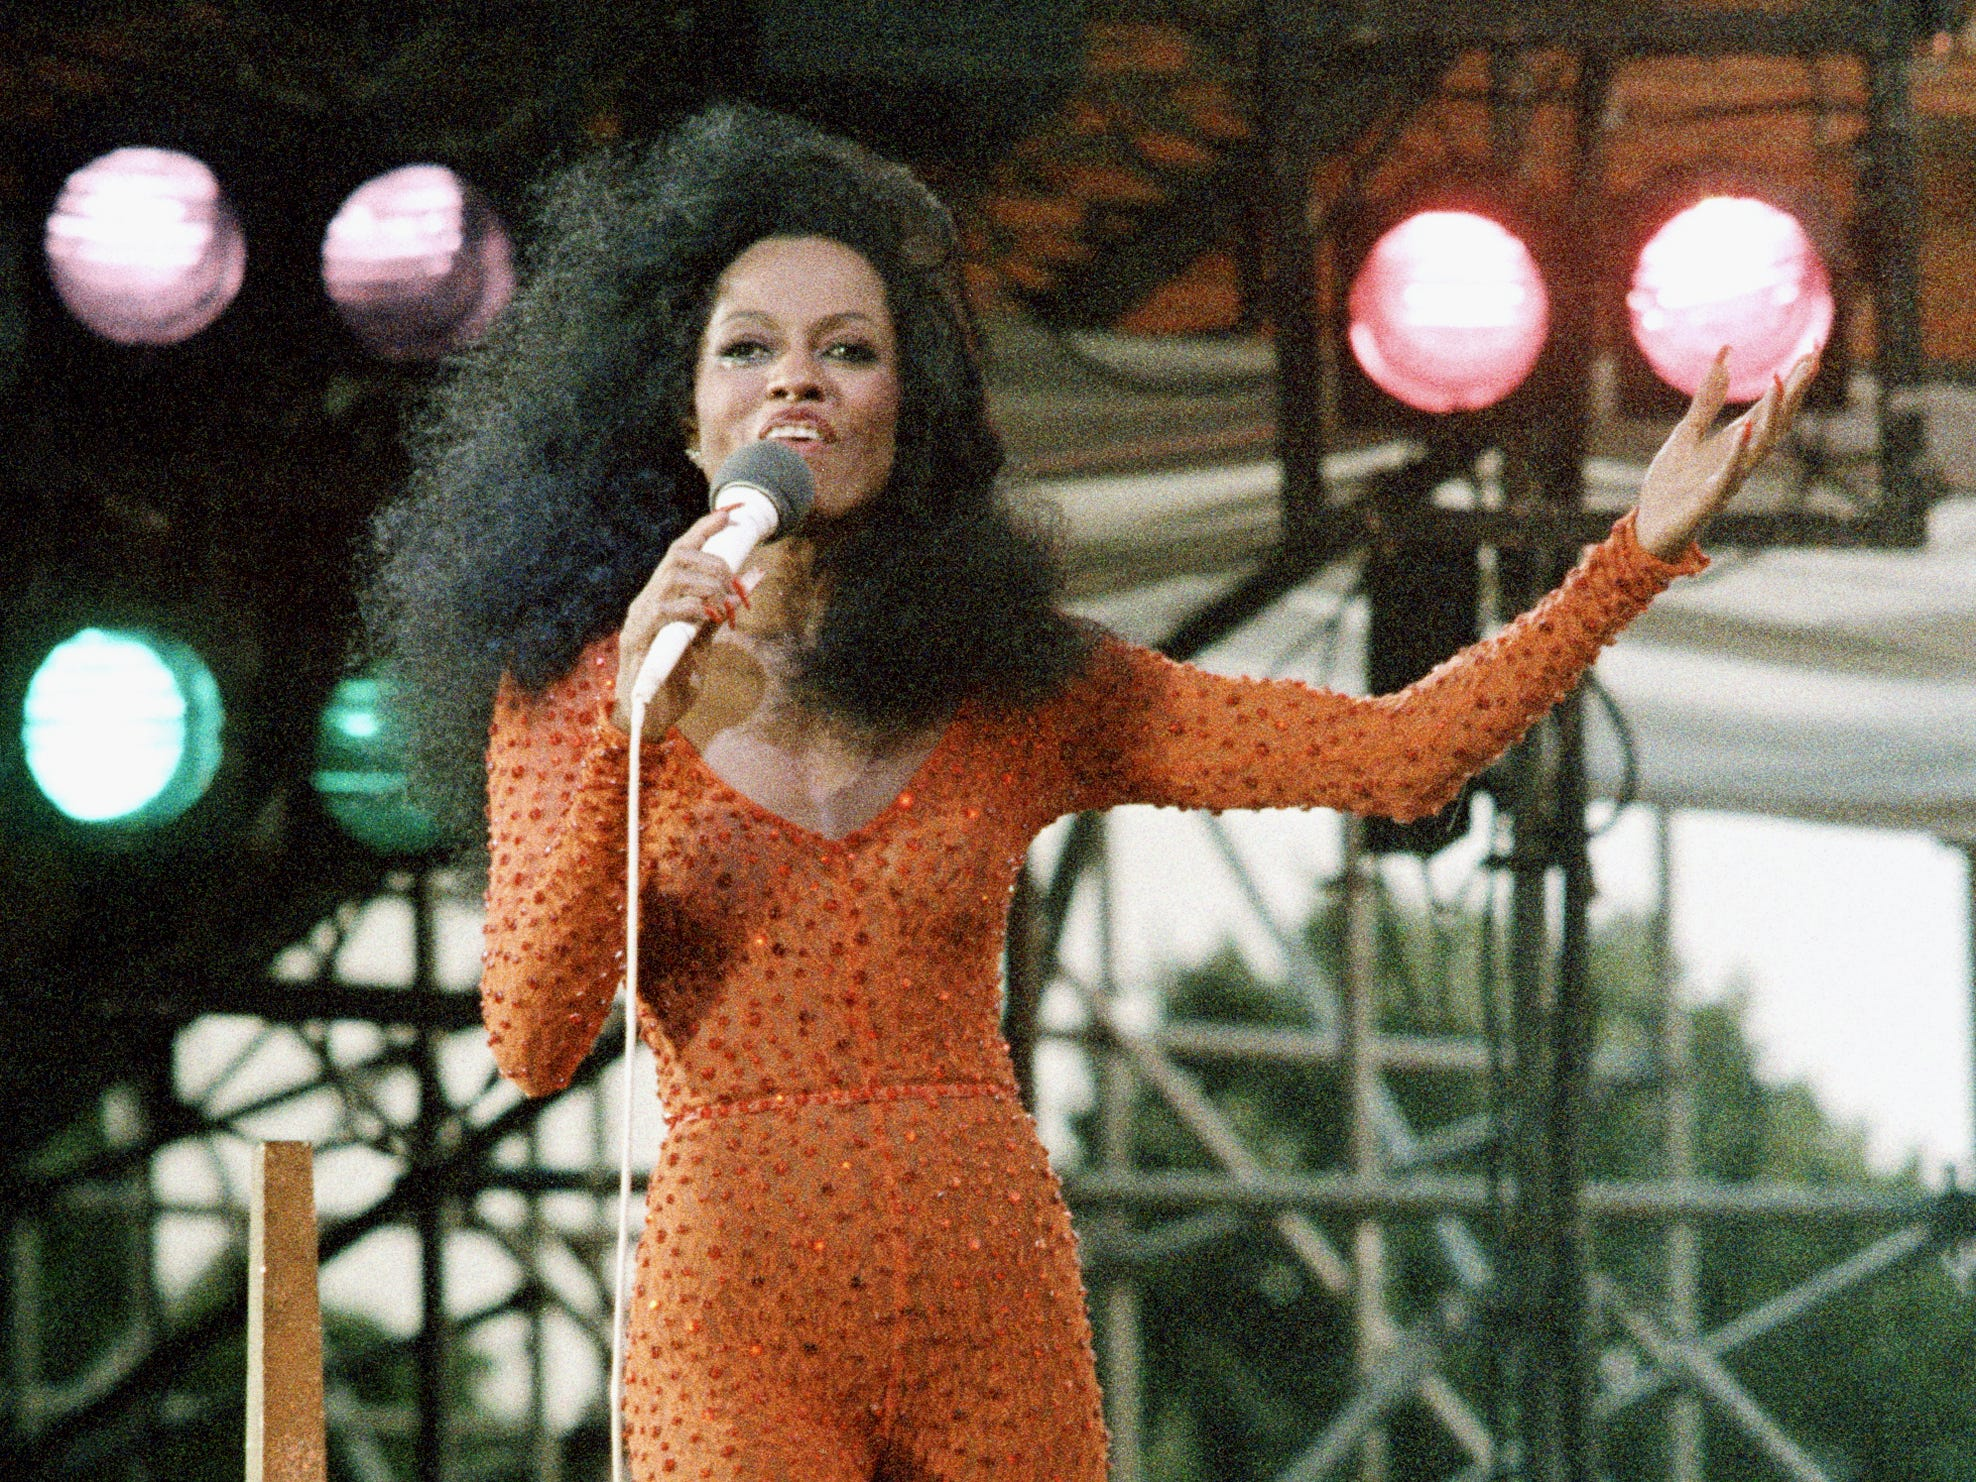 Diana Ross belts out a song to the huge crowd at  her free concert in New York's Central Park, July 21, 1983.